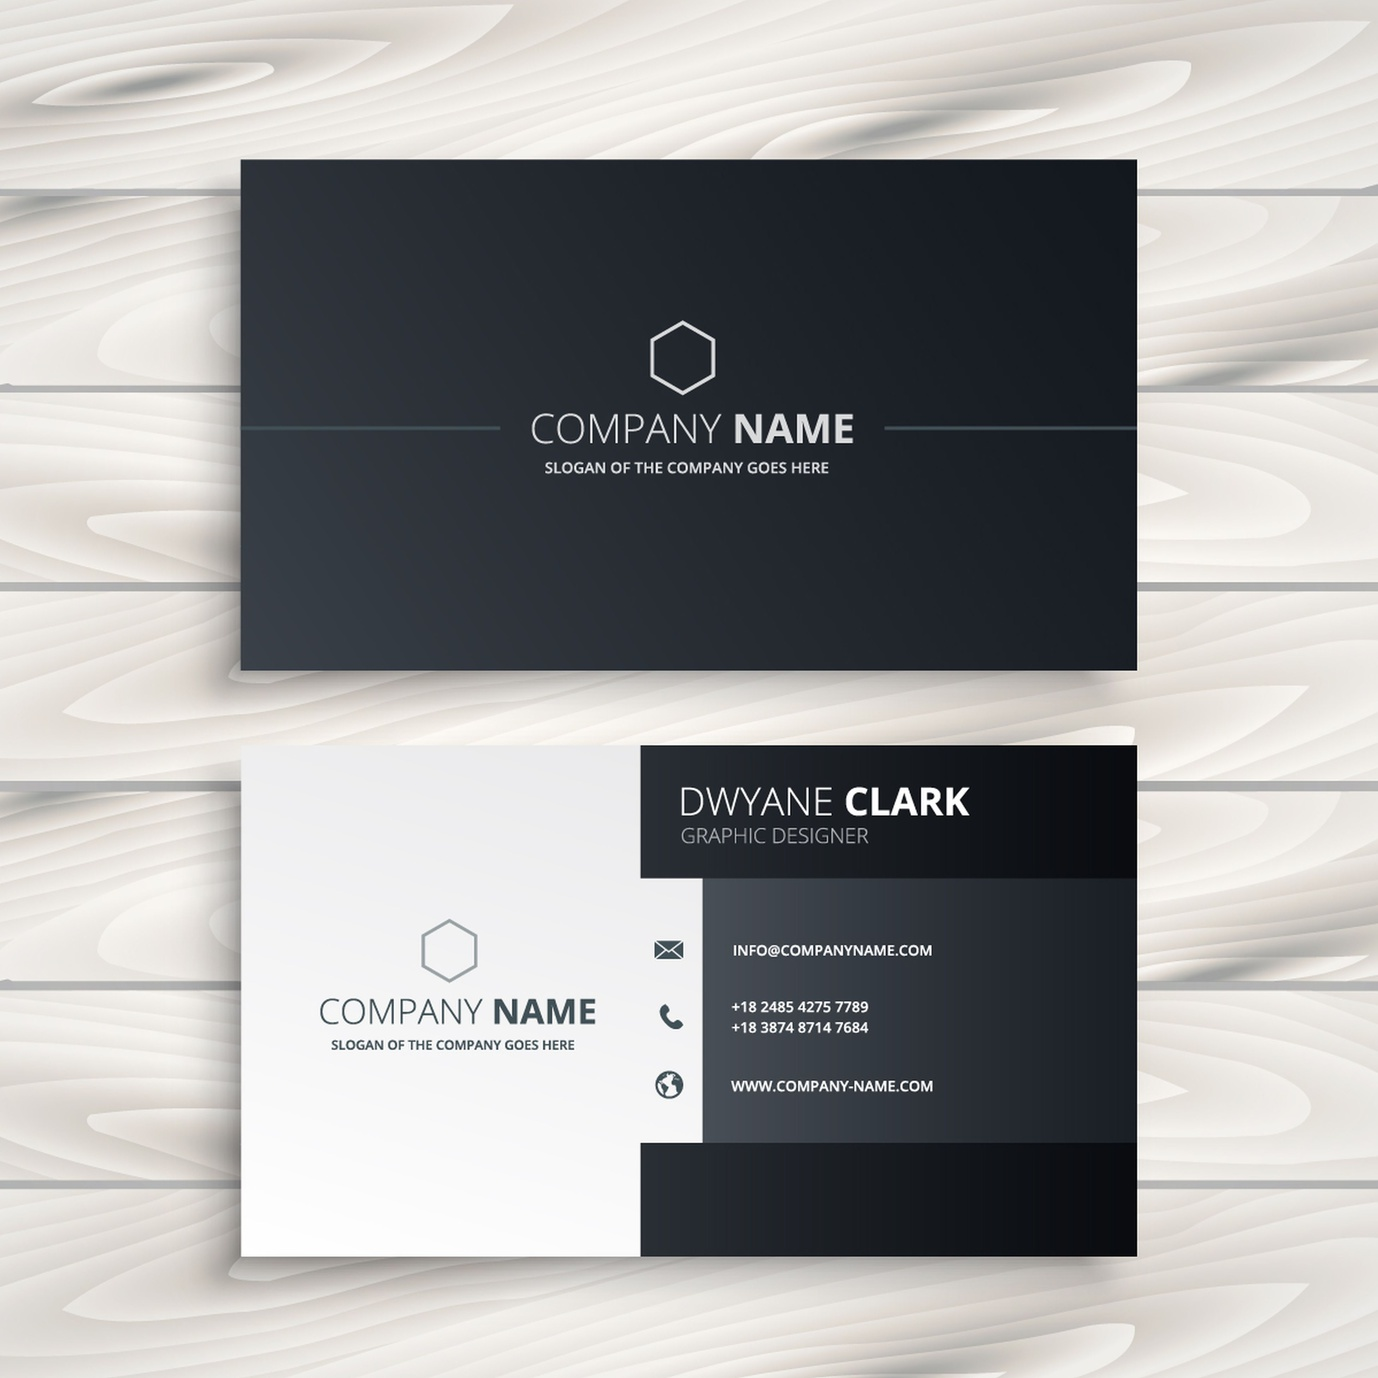 black and white business card templates by Catdi Printing